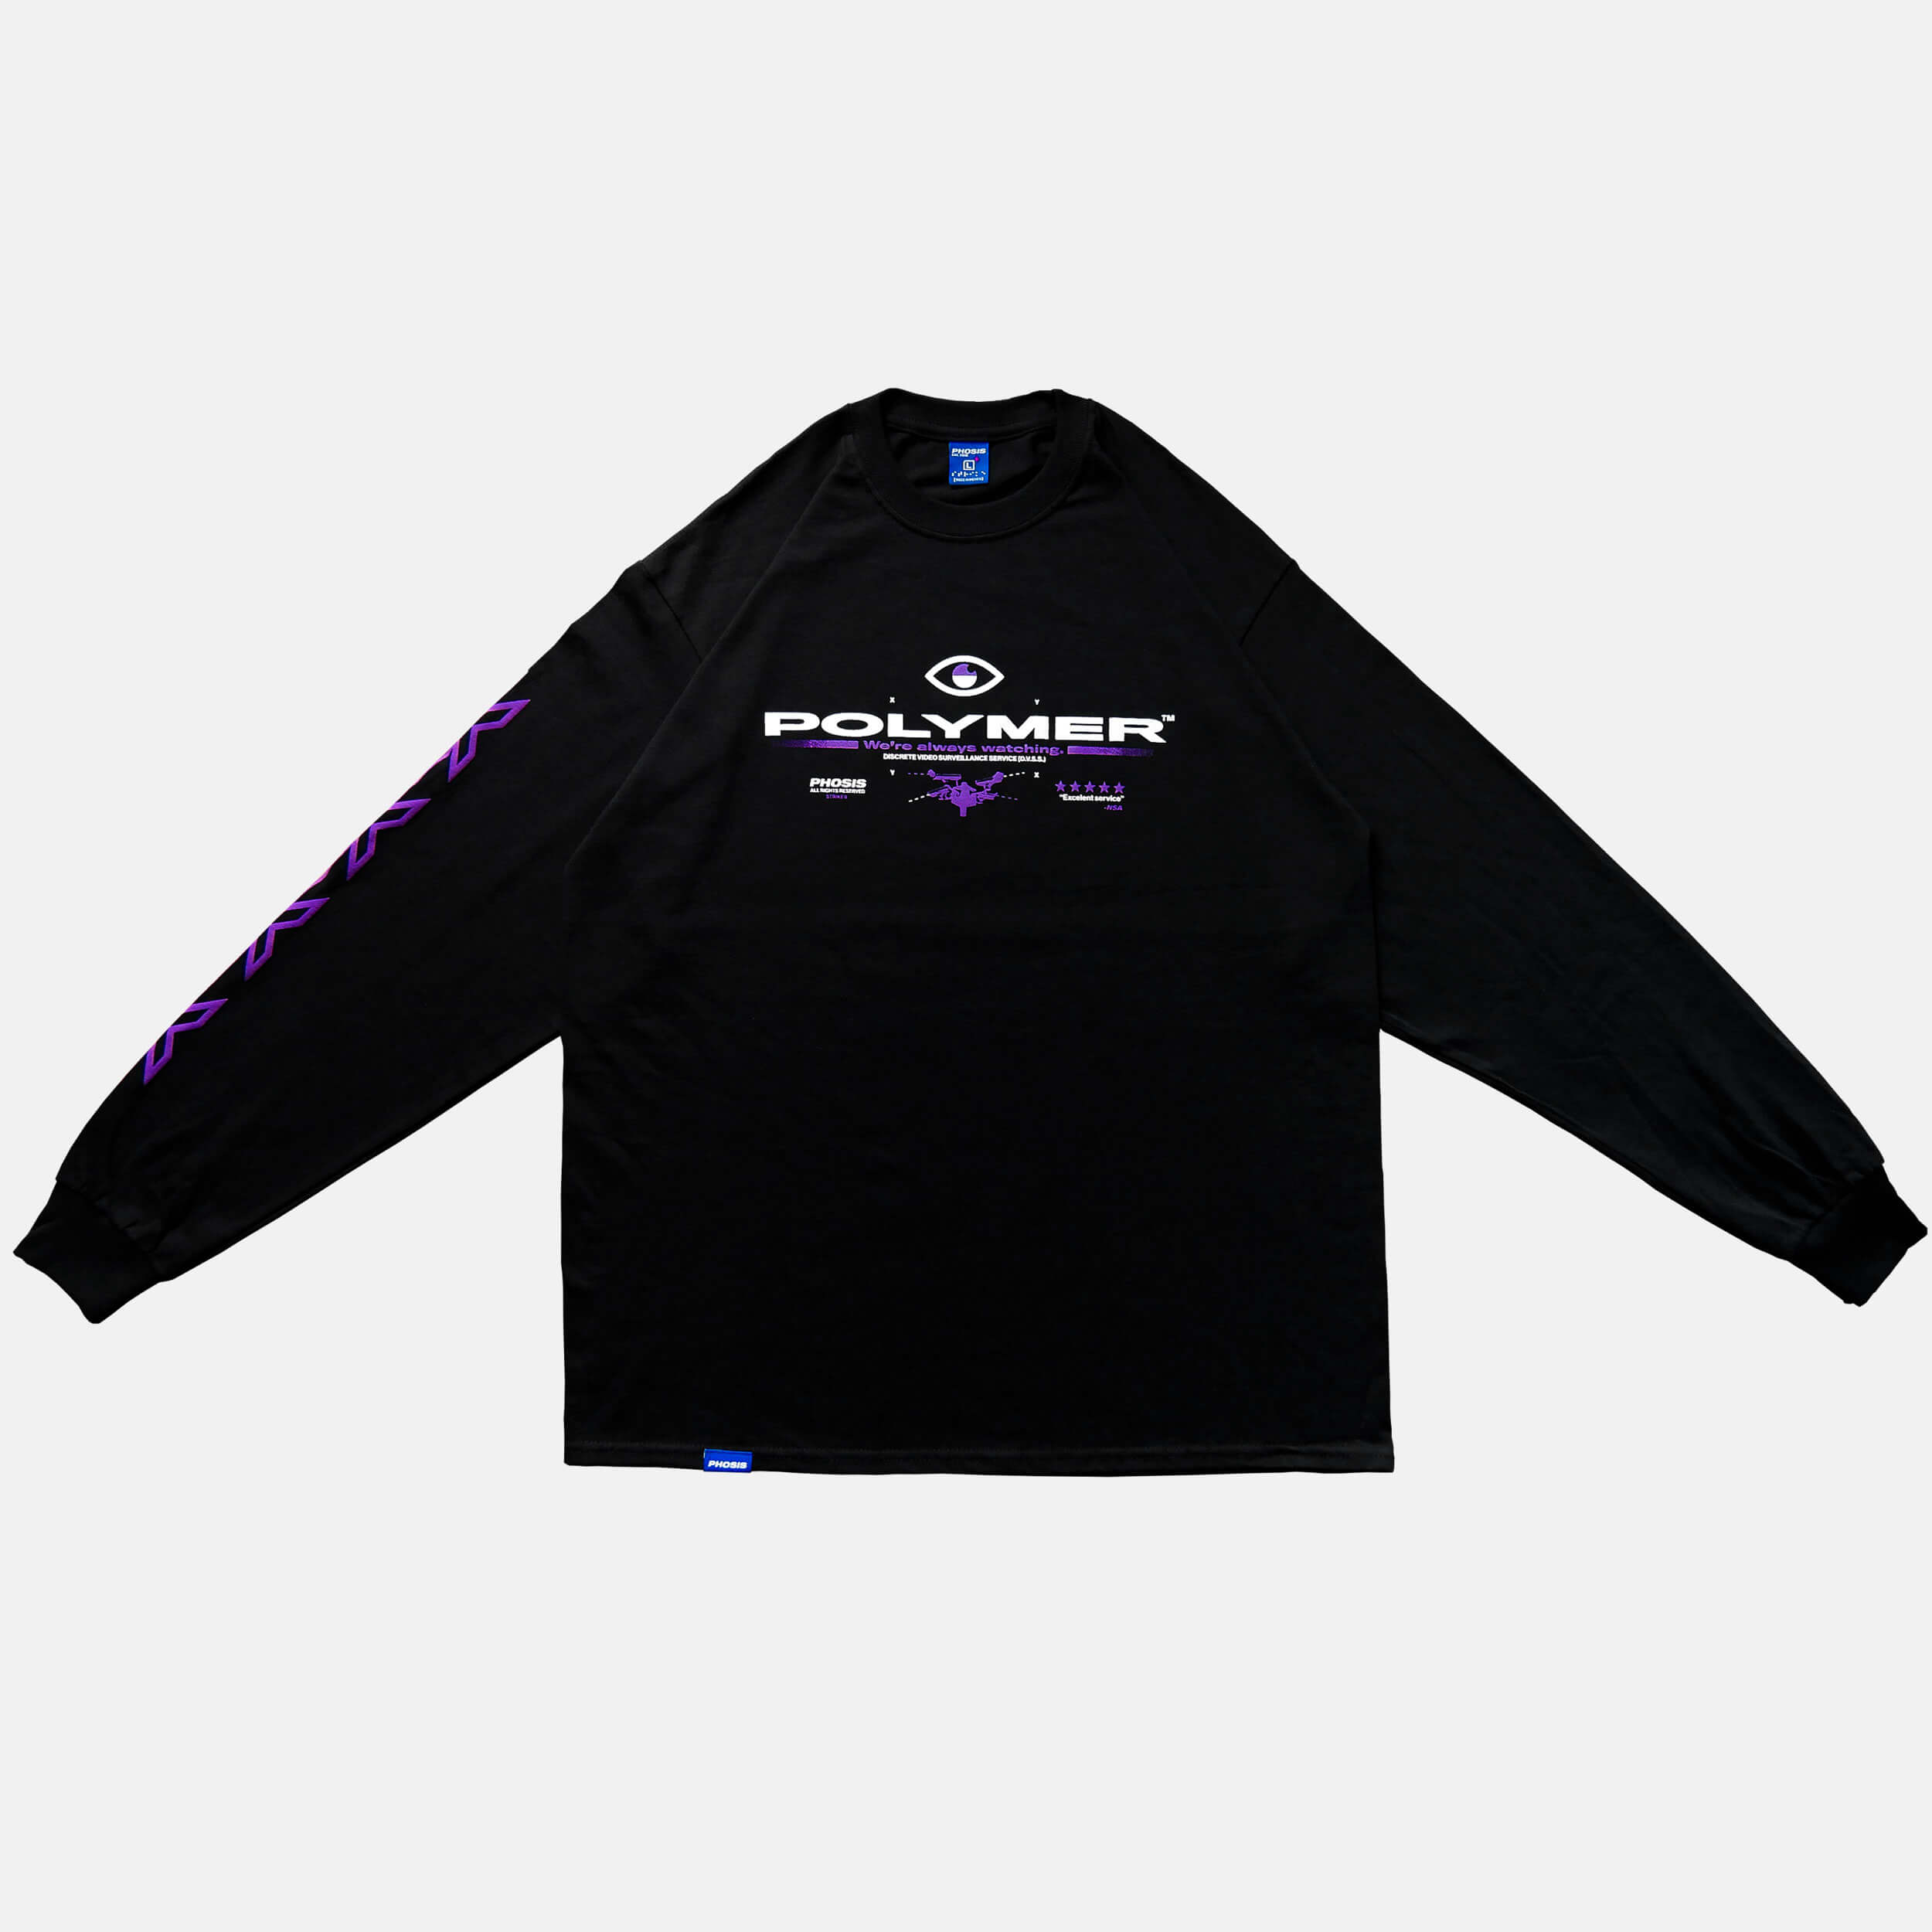 Front view of the screen-pinted POLYMER black long sleeve from PHOSIS Clothing